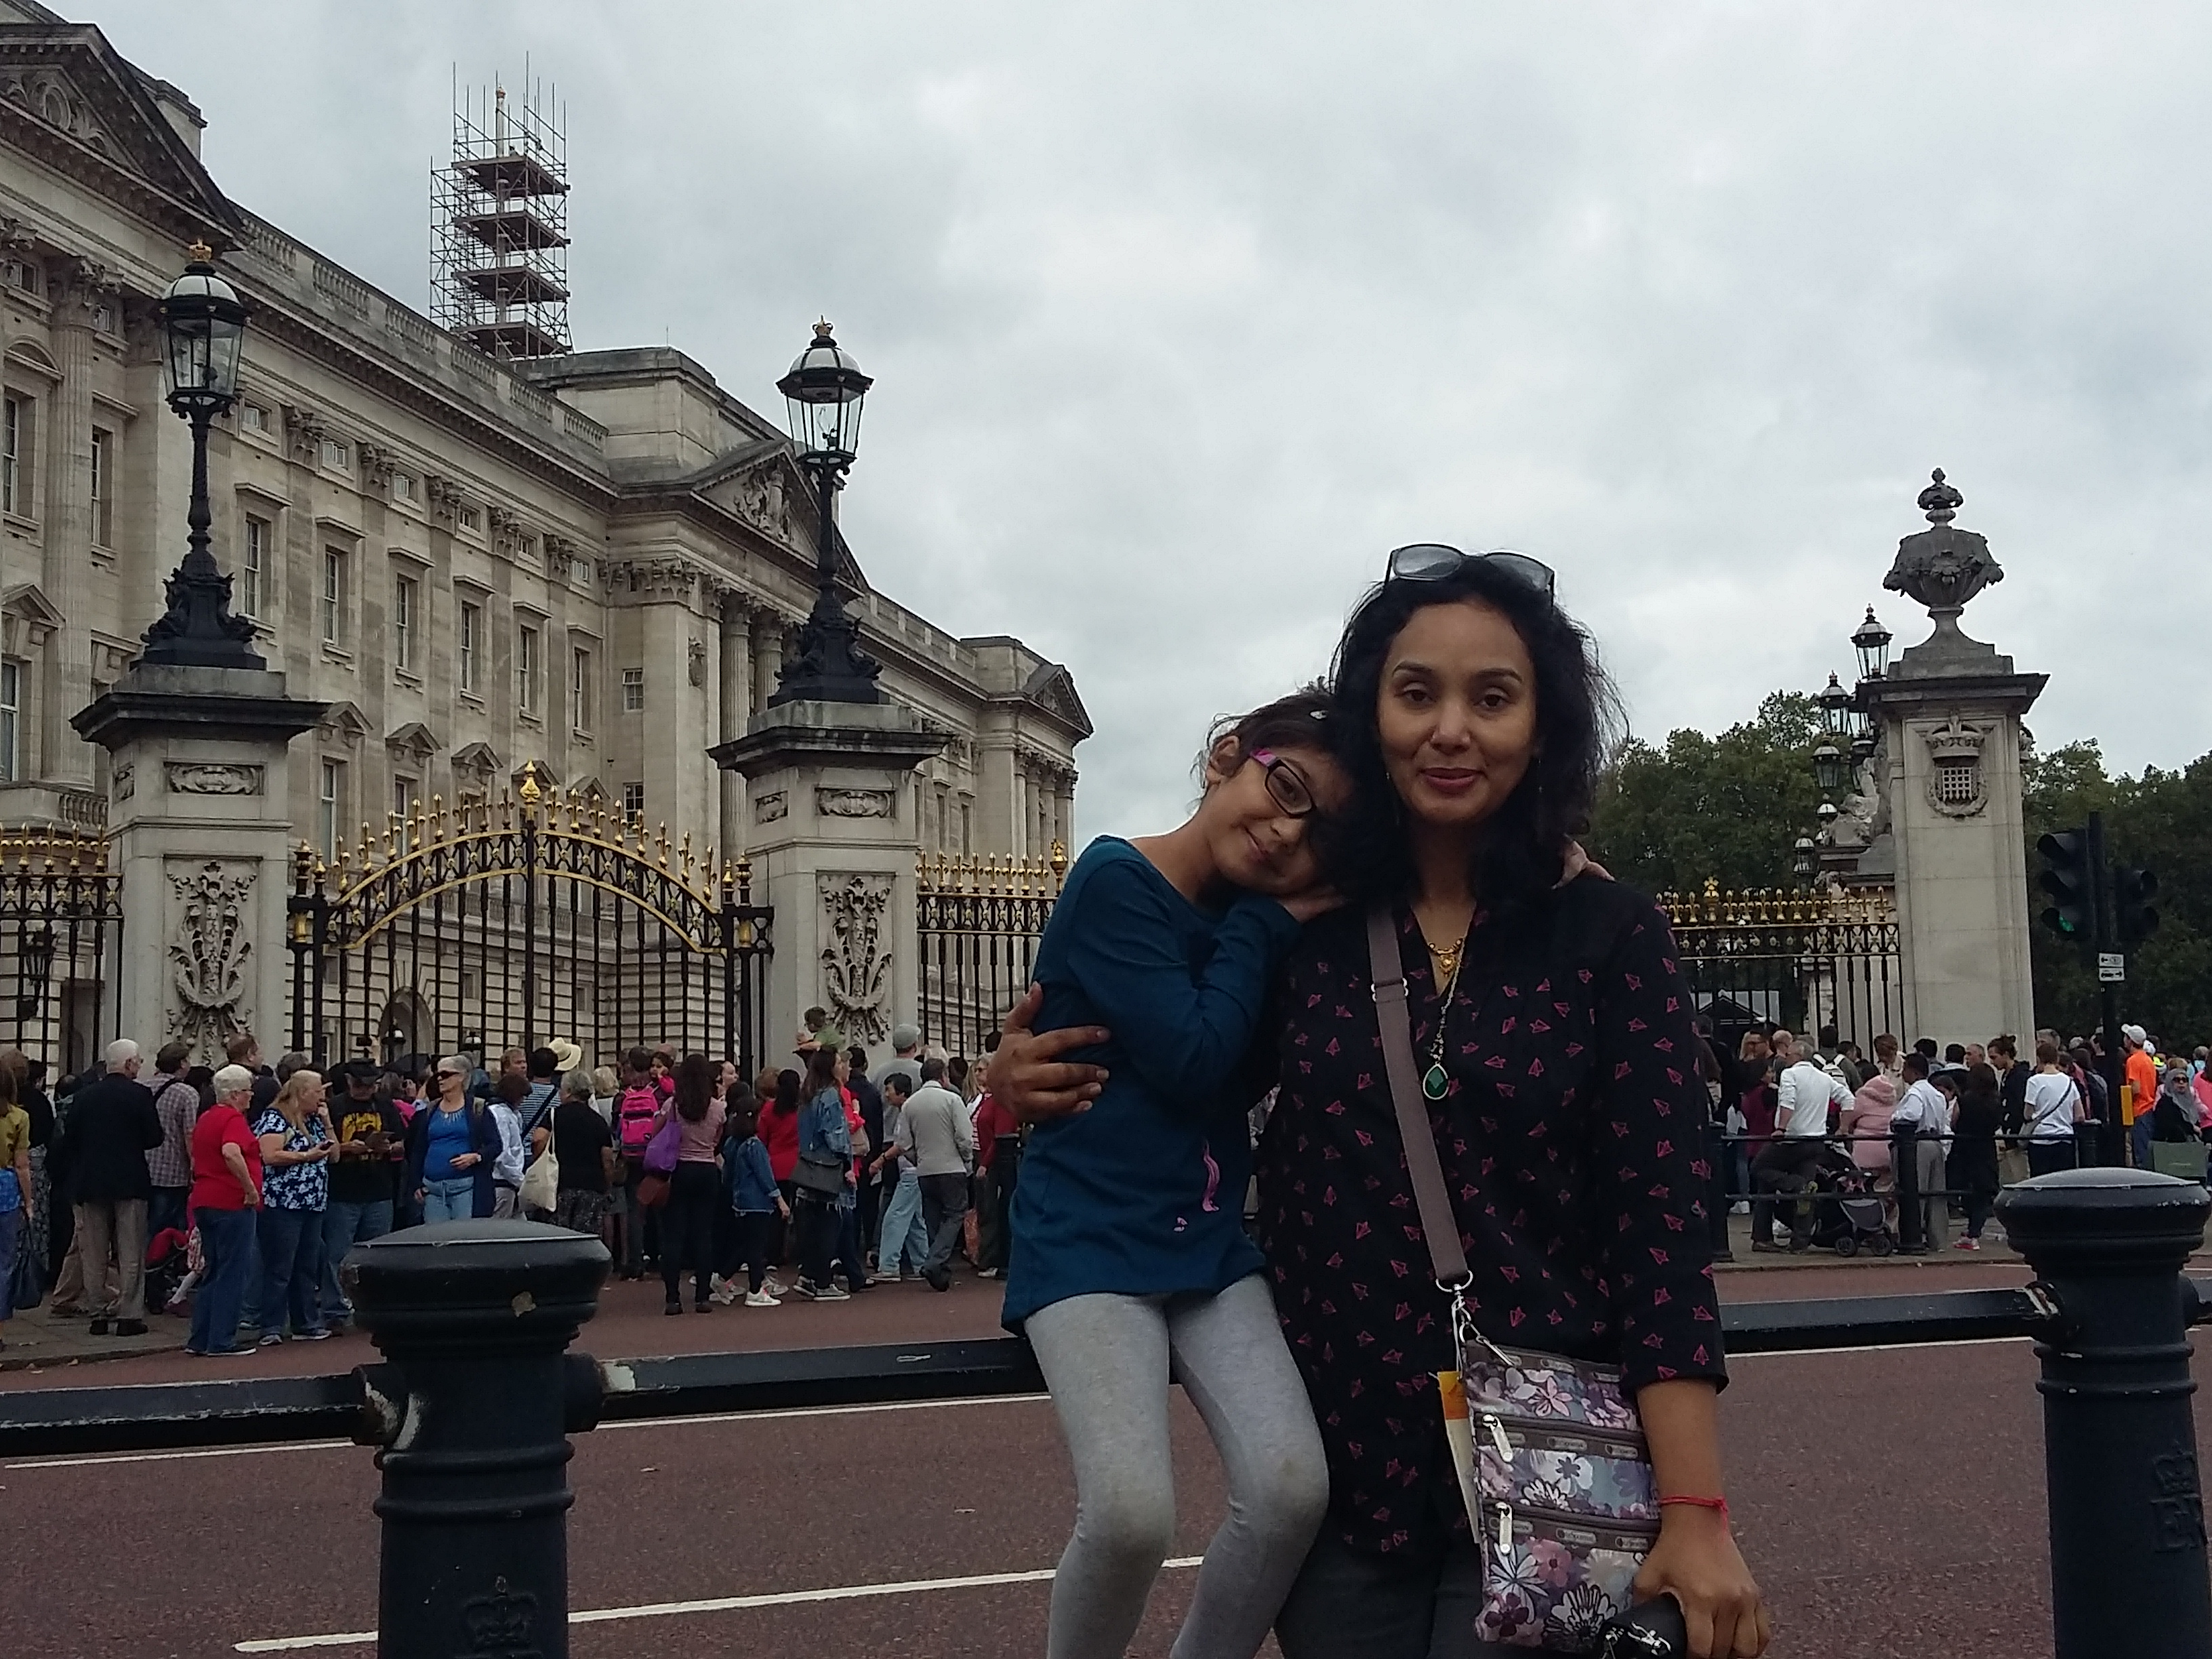 Tourists in front of Buckingham Palace